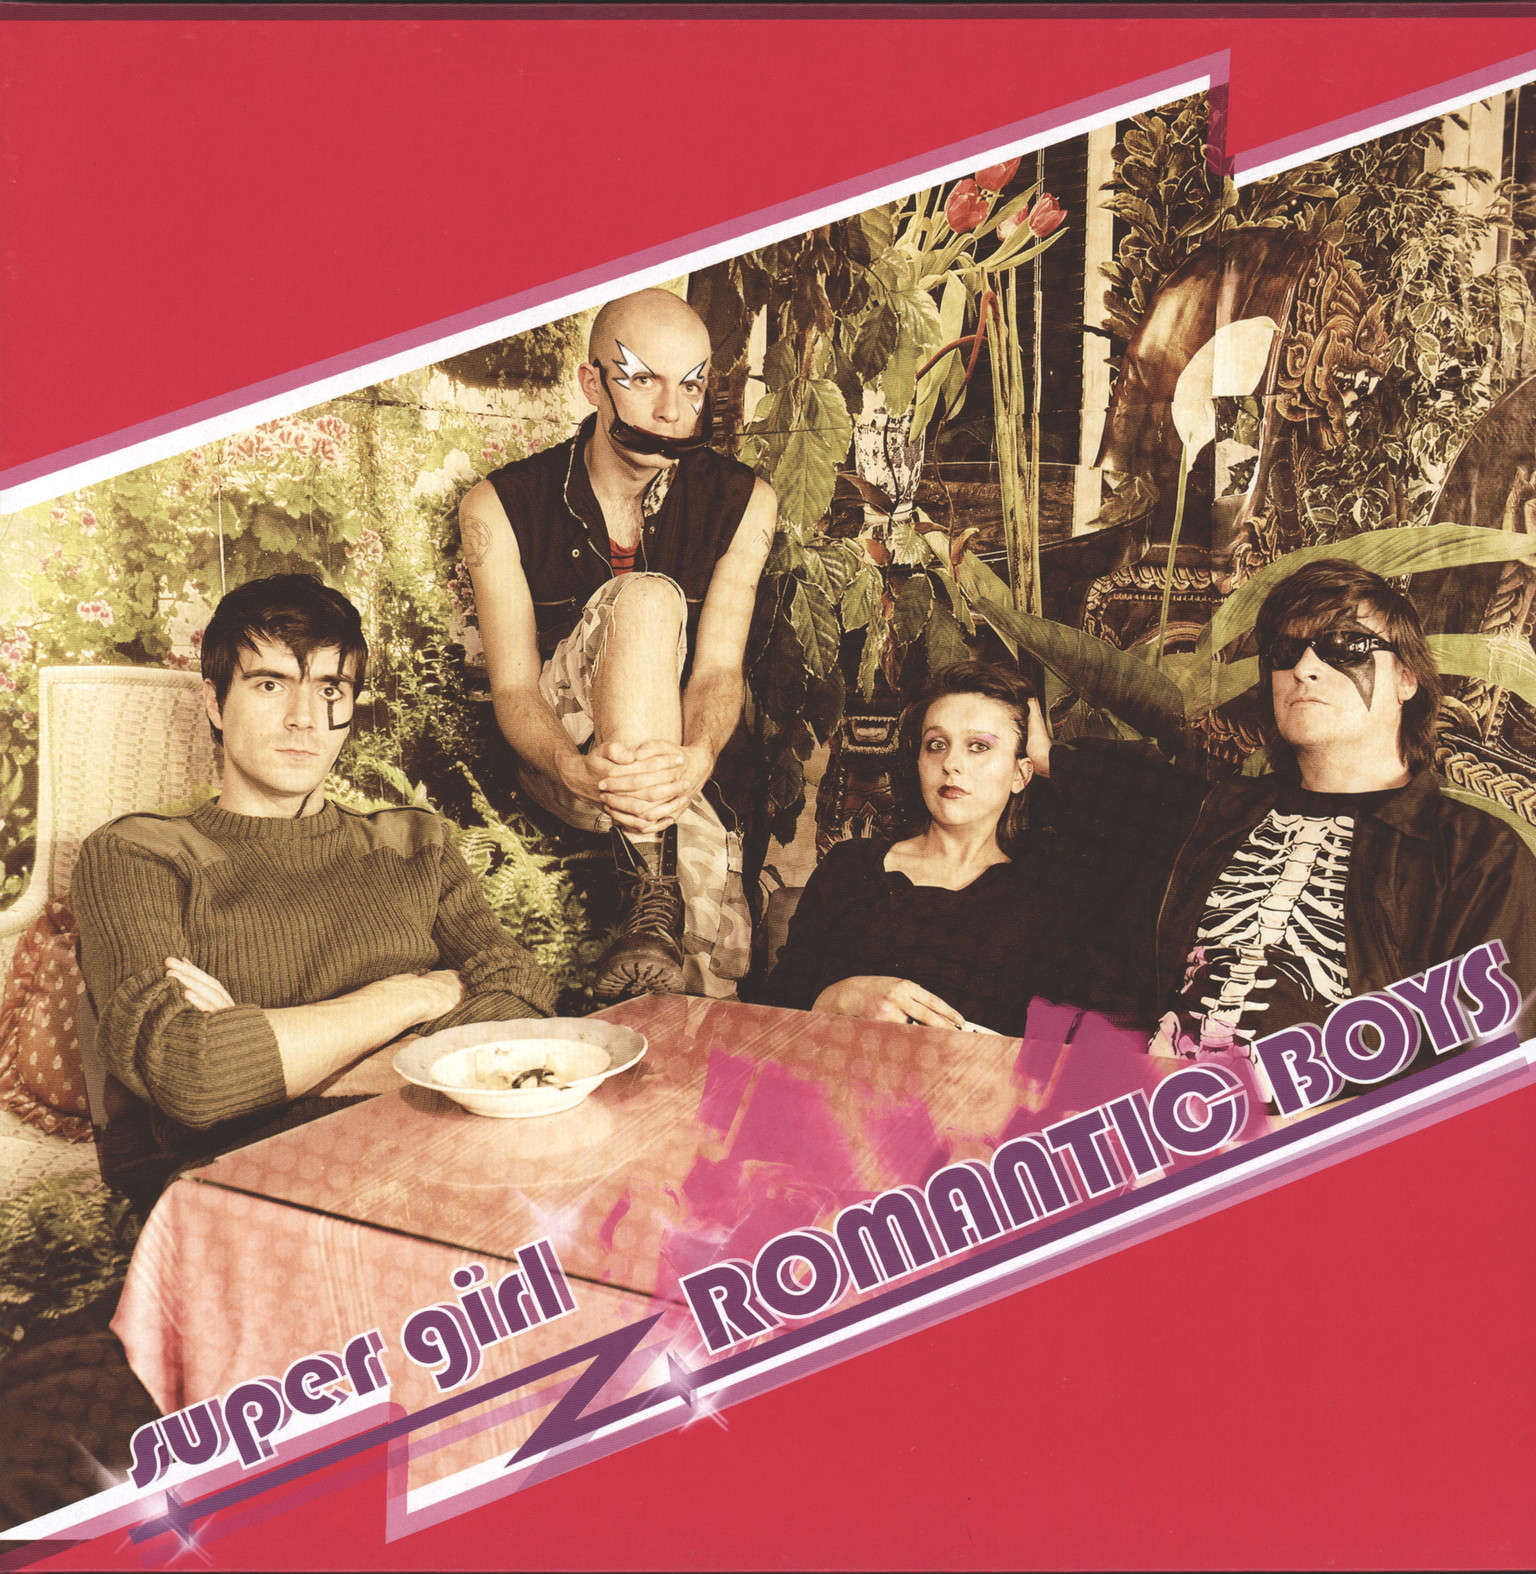 Super Girl Romantic Boys: Same, LP (Vinyl)